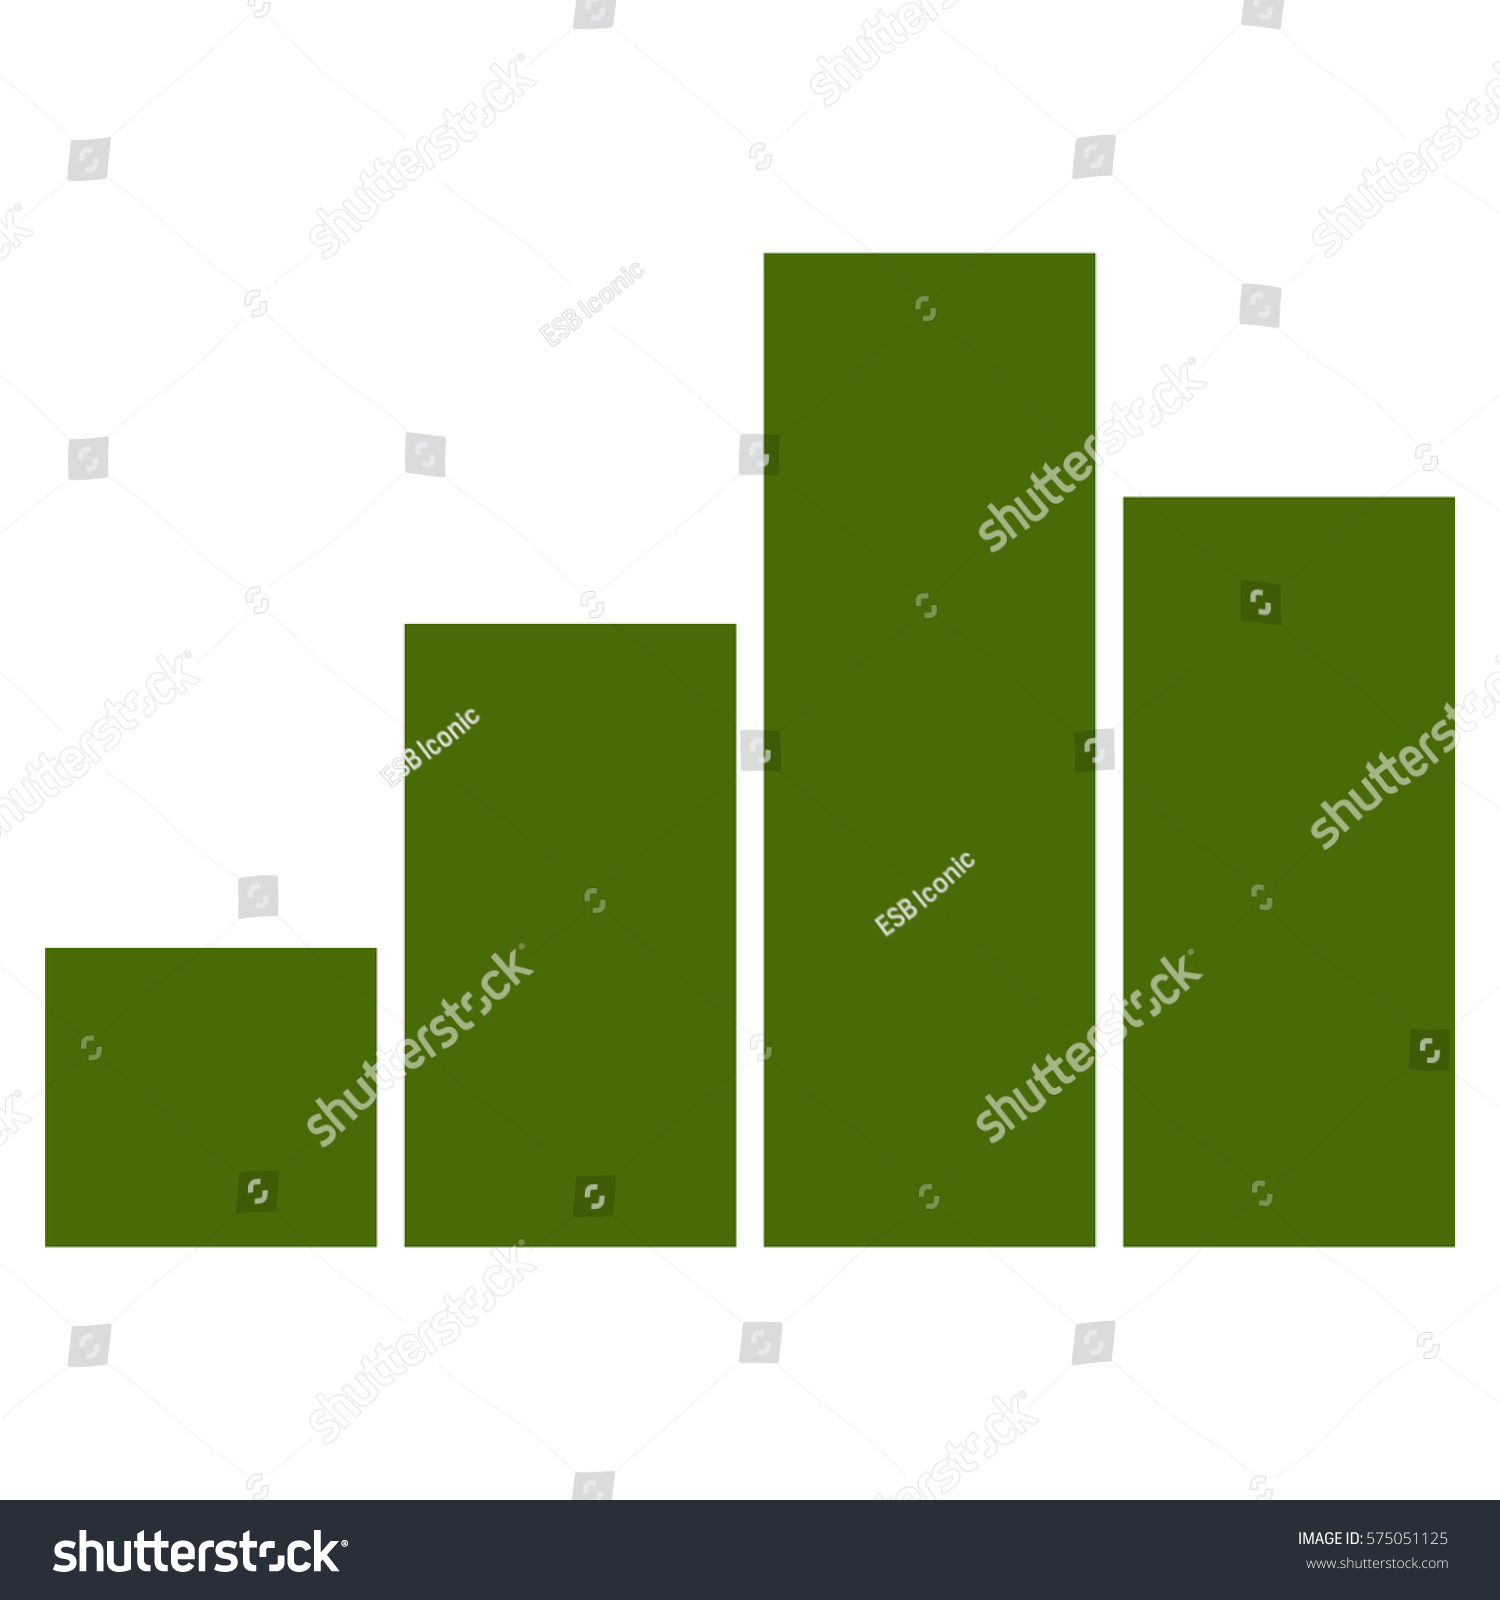 stock vector vector illustration of bar chart in green icon 575051125 swot icon wiring diagrams wiring diagrams flat design letters for th8320r1003 wiring diagrams at cita.asia